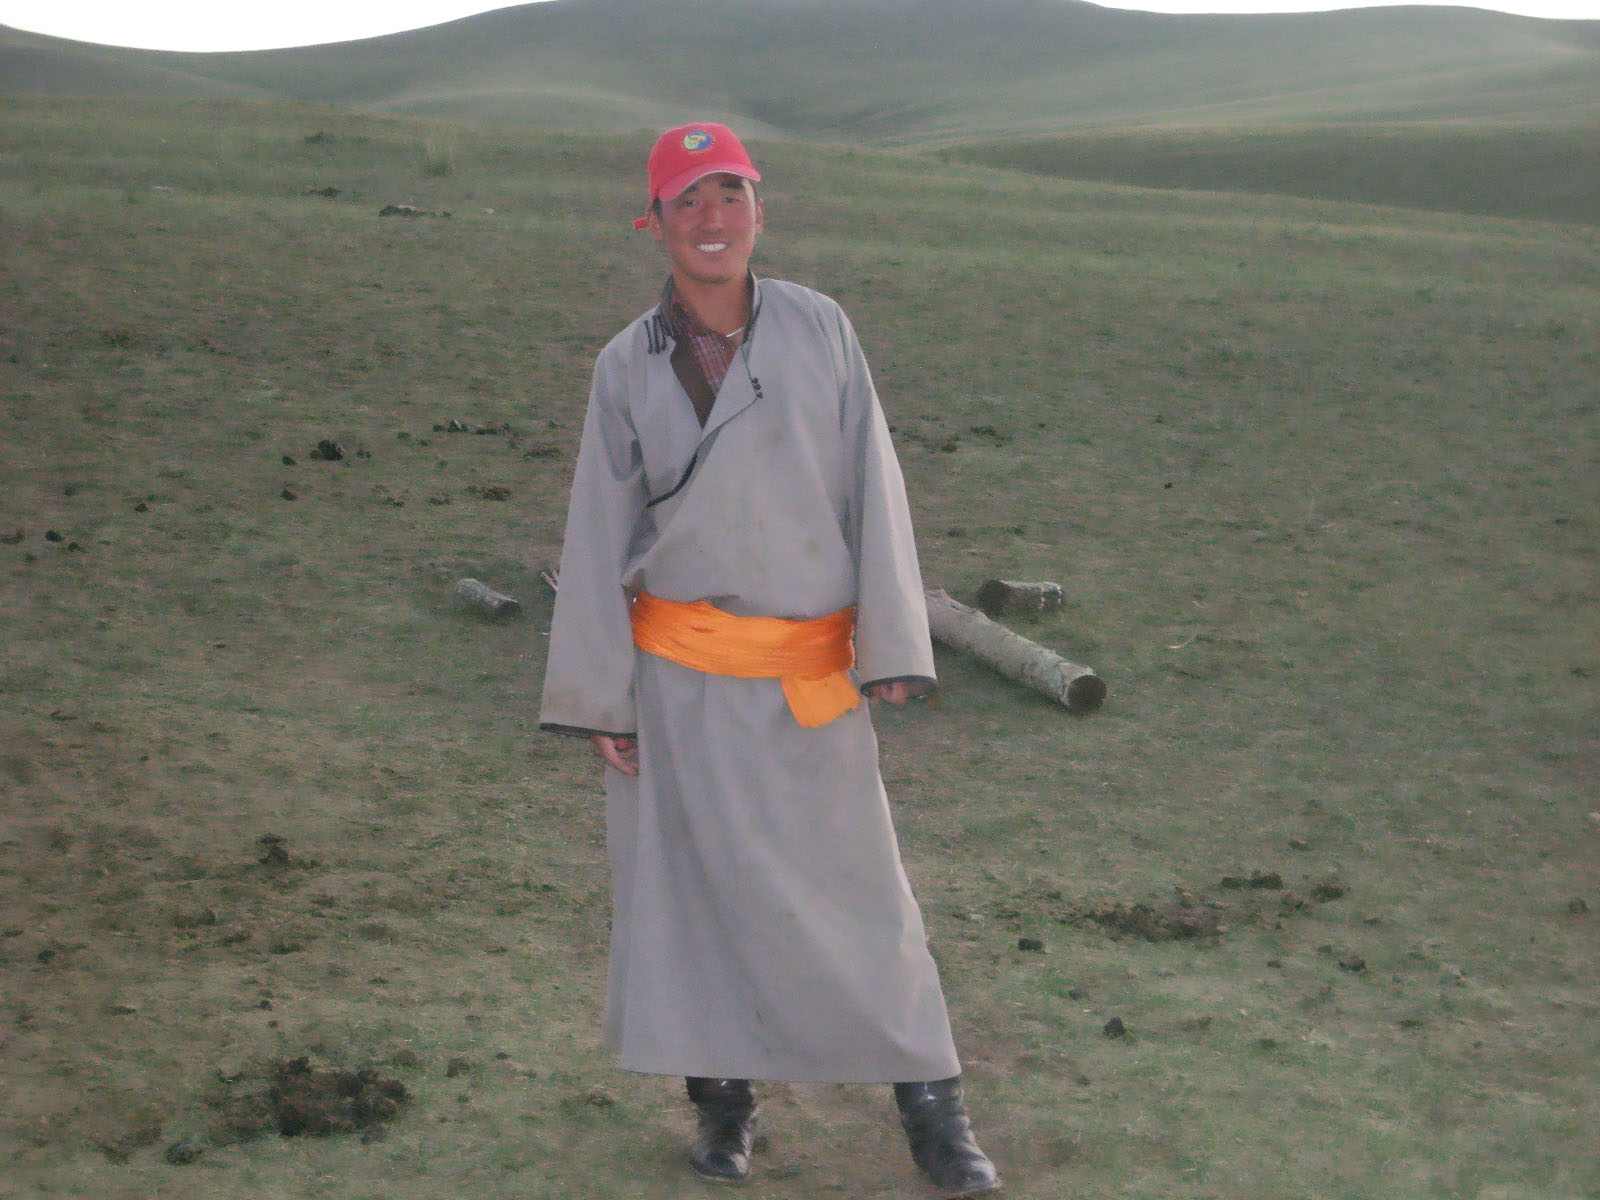 Horse riding is on of the top things to do in Mongolia in 2 weeks